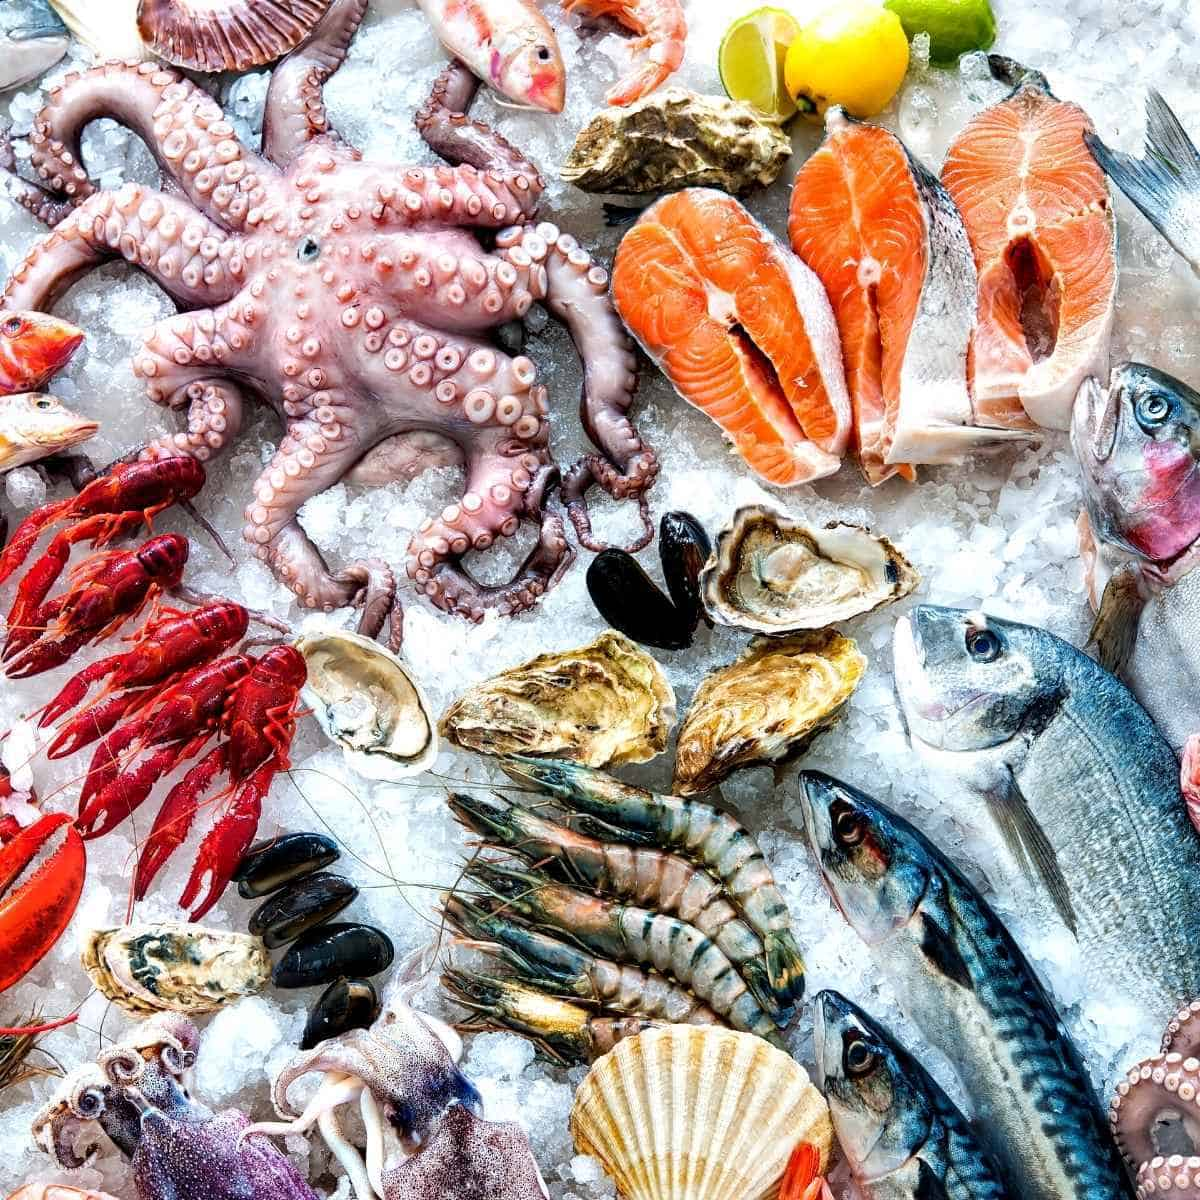 lots of seafood for keto - Is Dry Shrimp Keto? A Nutritionist Ways in with Recipes